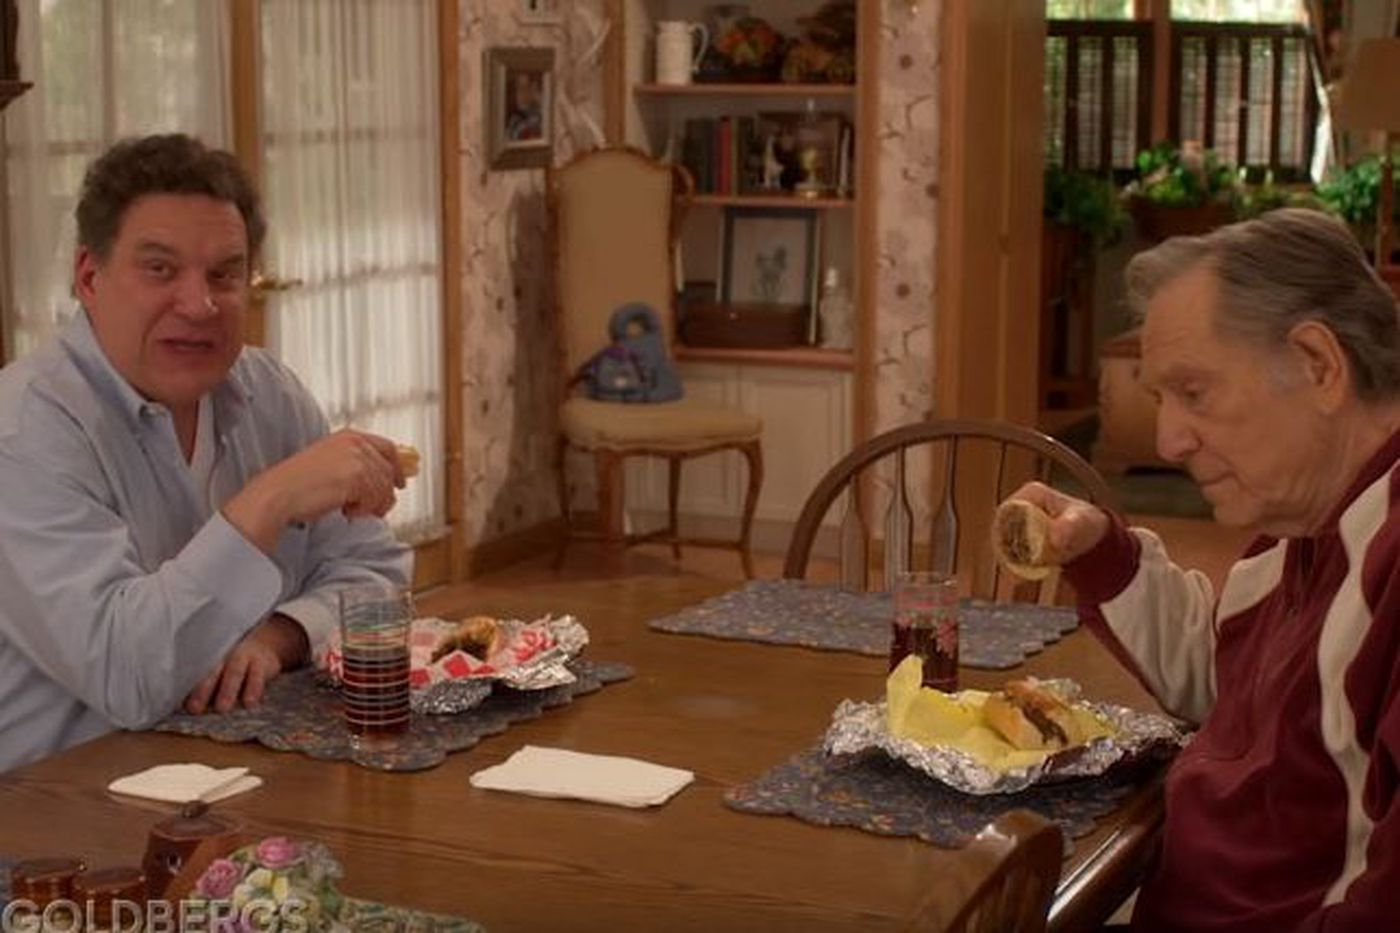 Pat's? Geno's? Jim's? See 'Goldbergs' tackle age-old debate